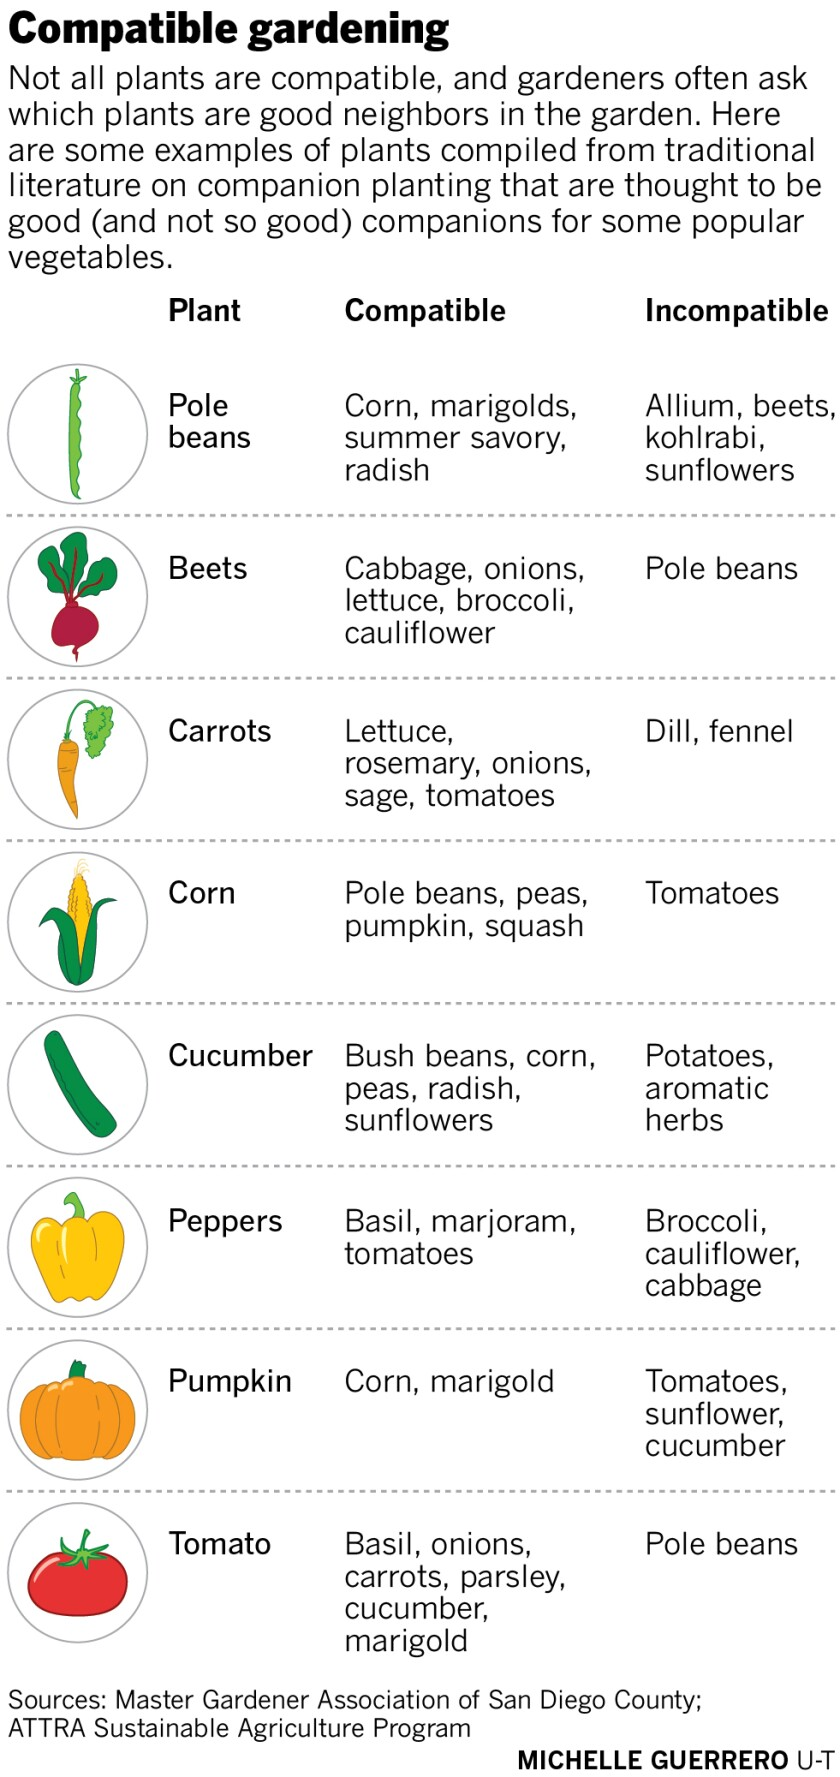 compatible gardening infographic